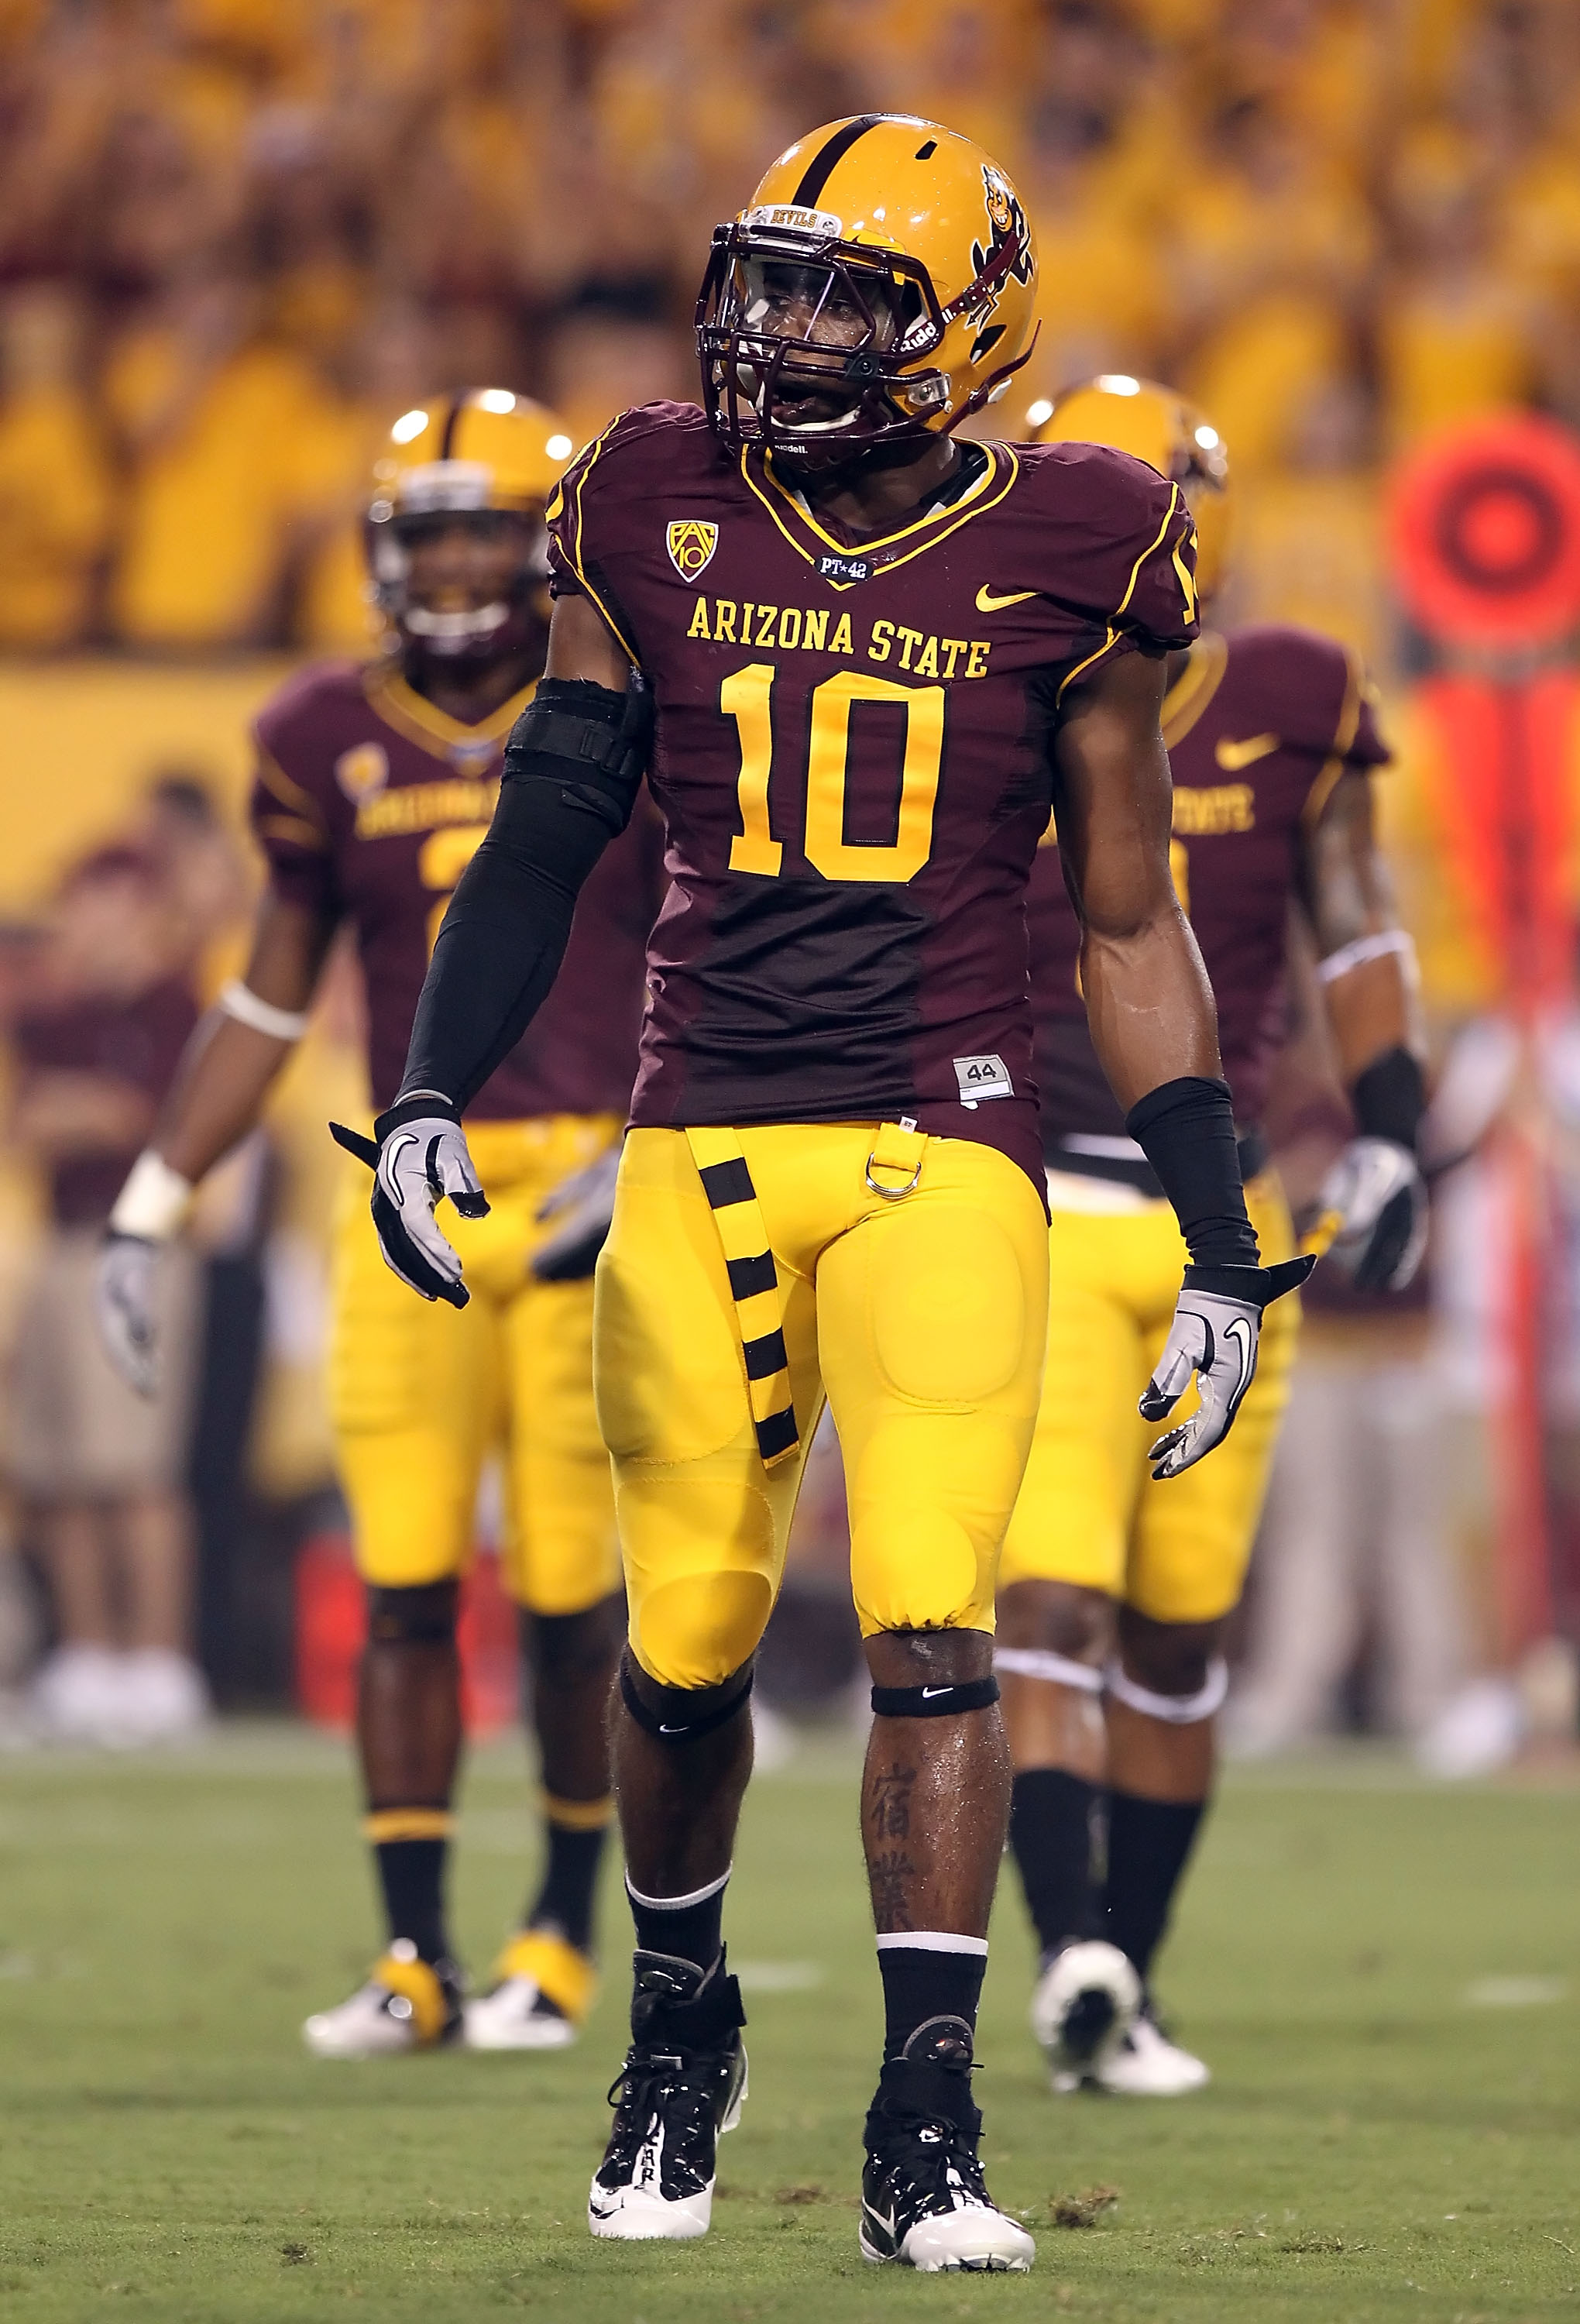 TEMPE, AZ - SEPTEMBER 04:  Safety Keelan Johnson #10 of the Arizona State Sun Devils during the college football game against the Portland State Vikings at Sun Devil Stadium on September 4, 2010 in Tempe, Arizona.  The Sun Devils defeated the Vikings 54-9